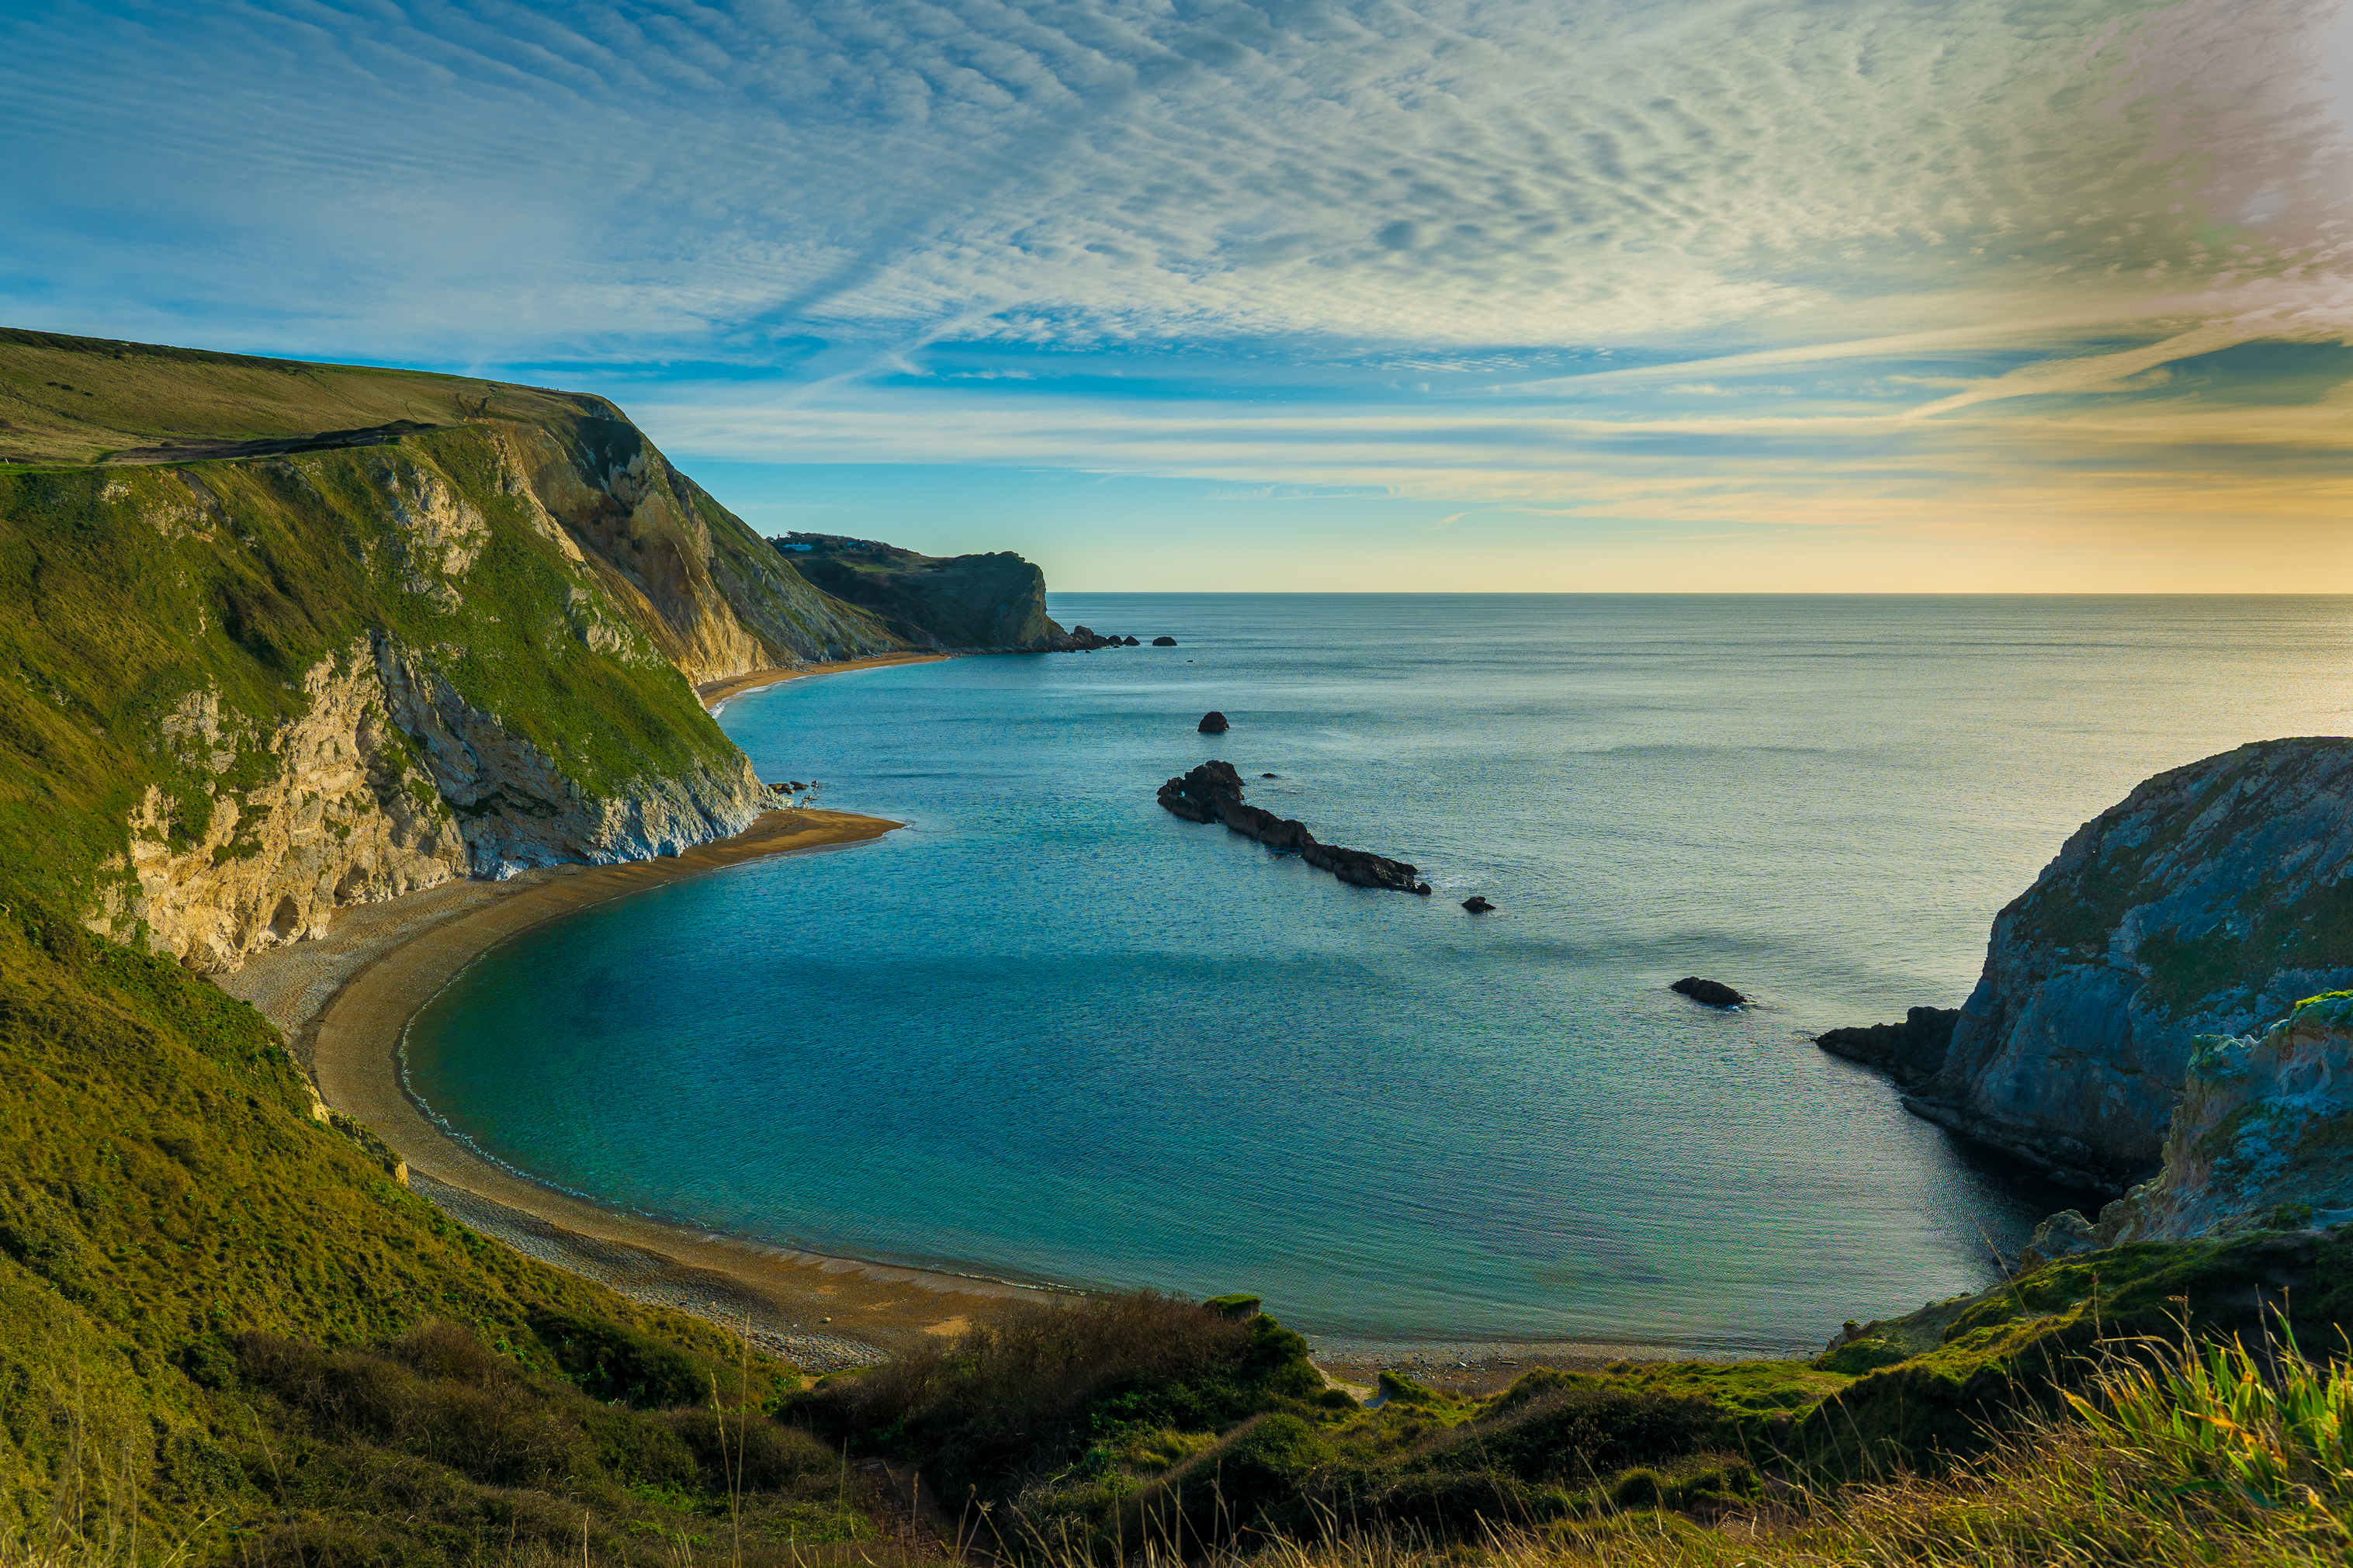 Early morning, overlooking a turquoise bay on the Dorset coast.